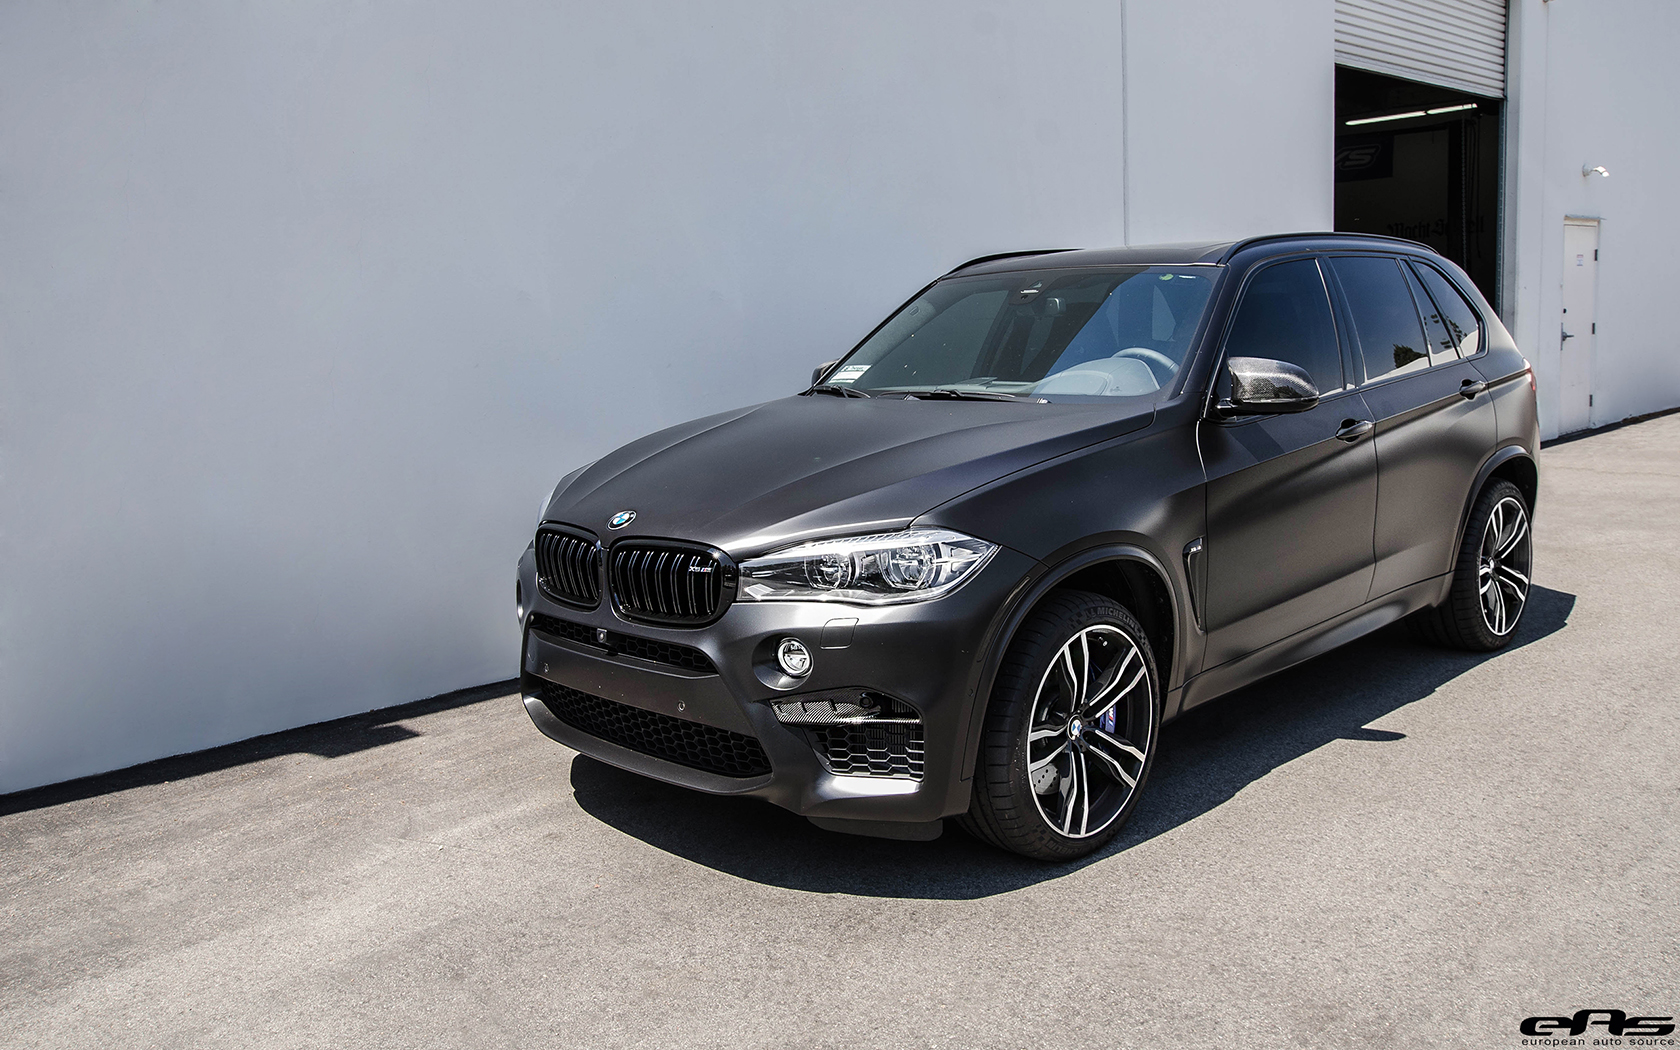 Matte Black BMW X5 M Gets Some Aftermarket Goodies Installed 27